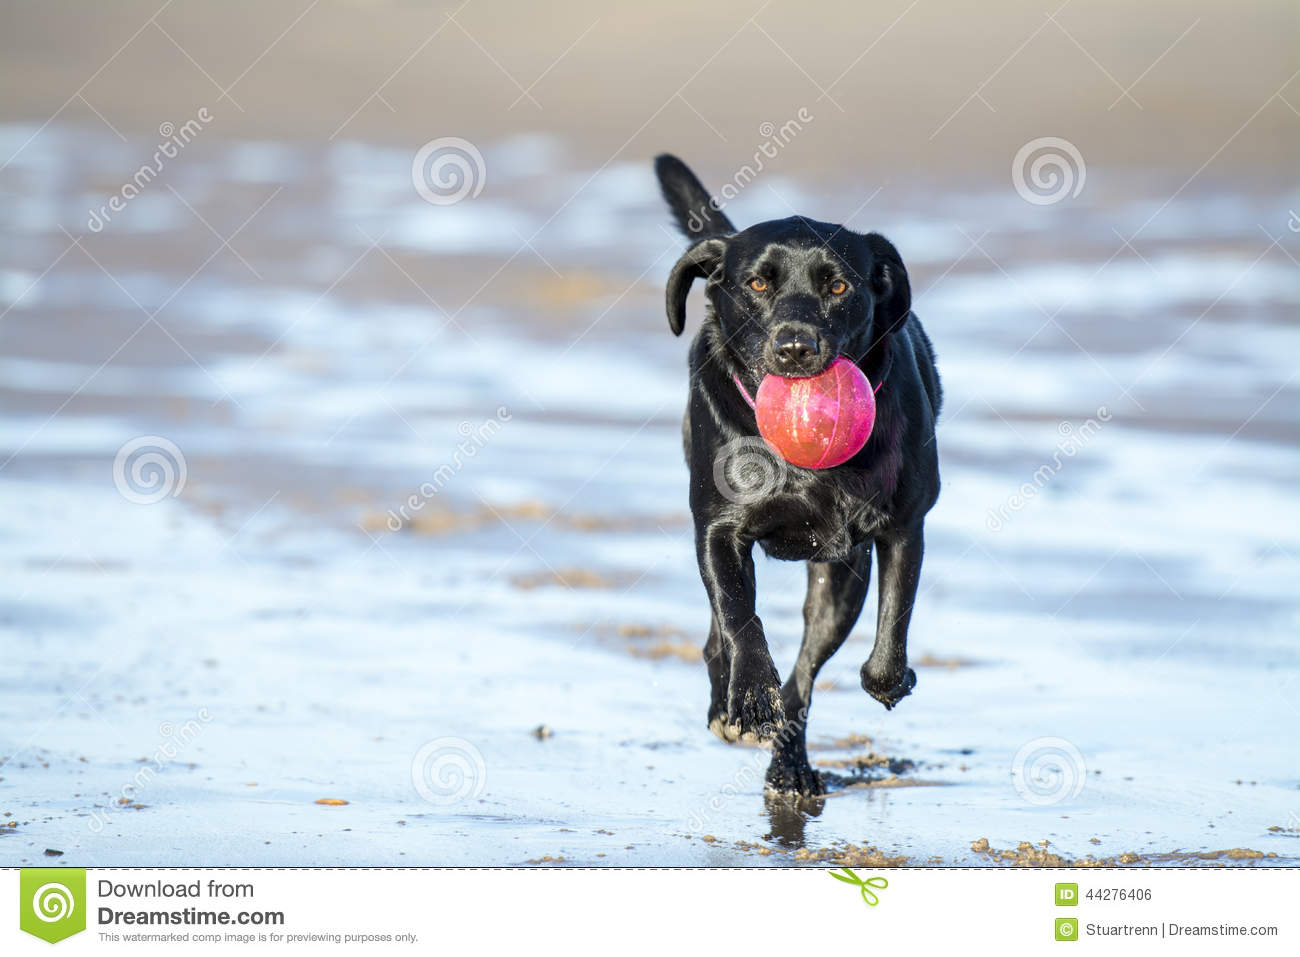 Black Lab Dog Running Black Labrador Playing With Ball On Beach Stock Photo